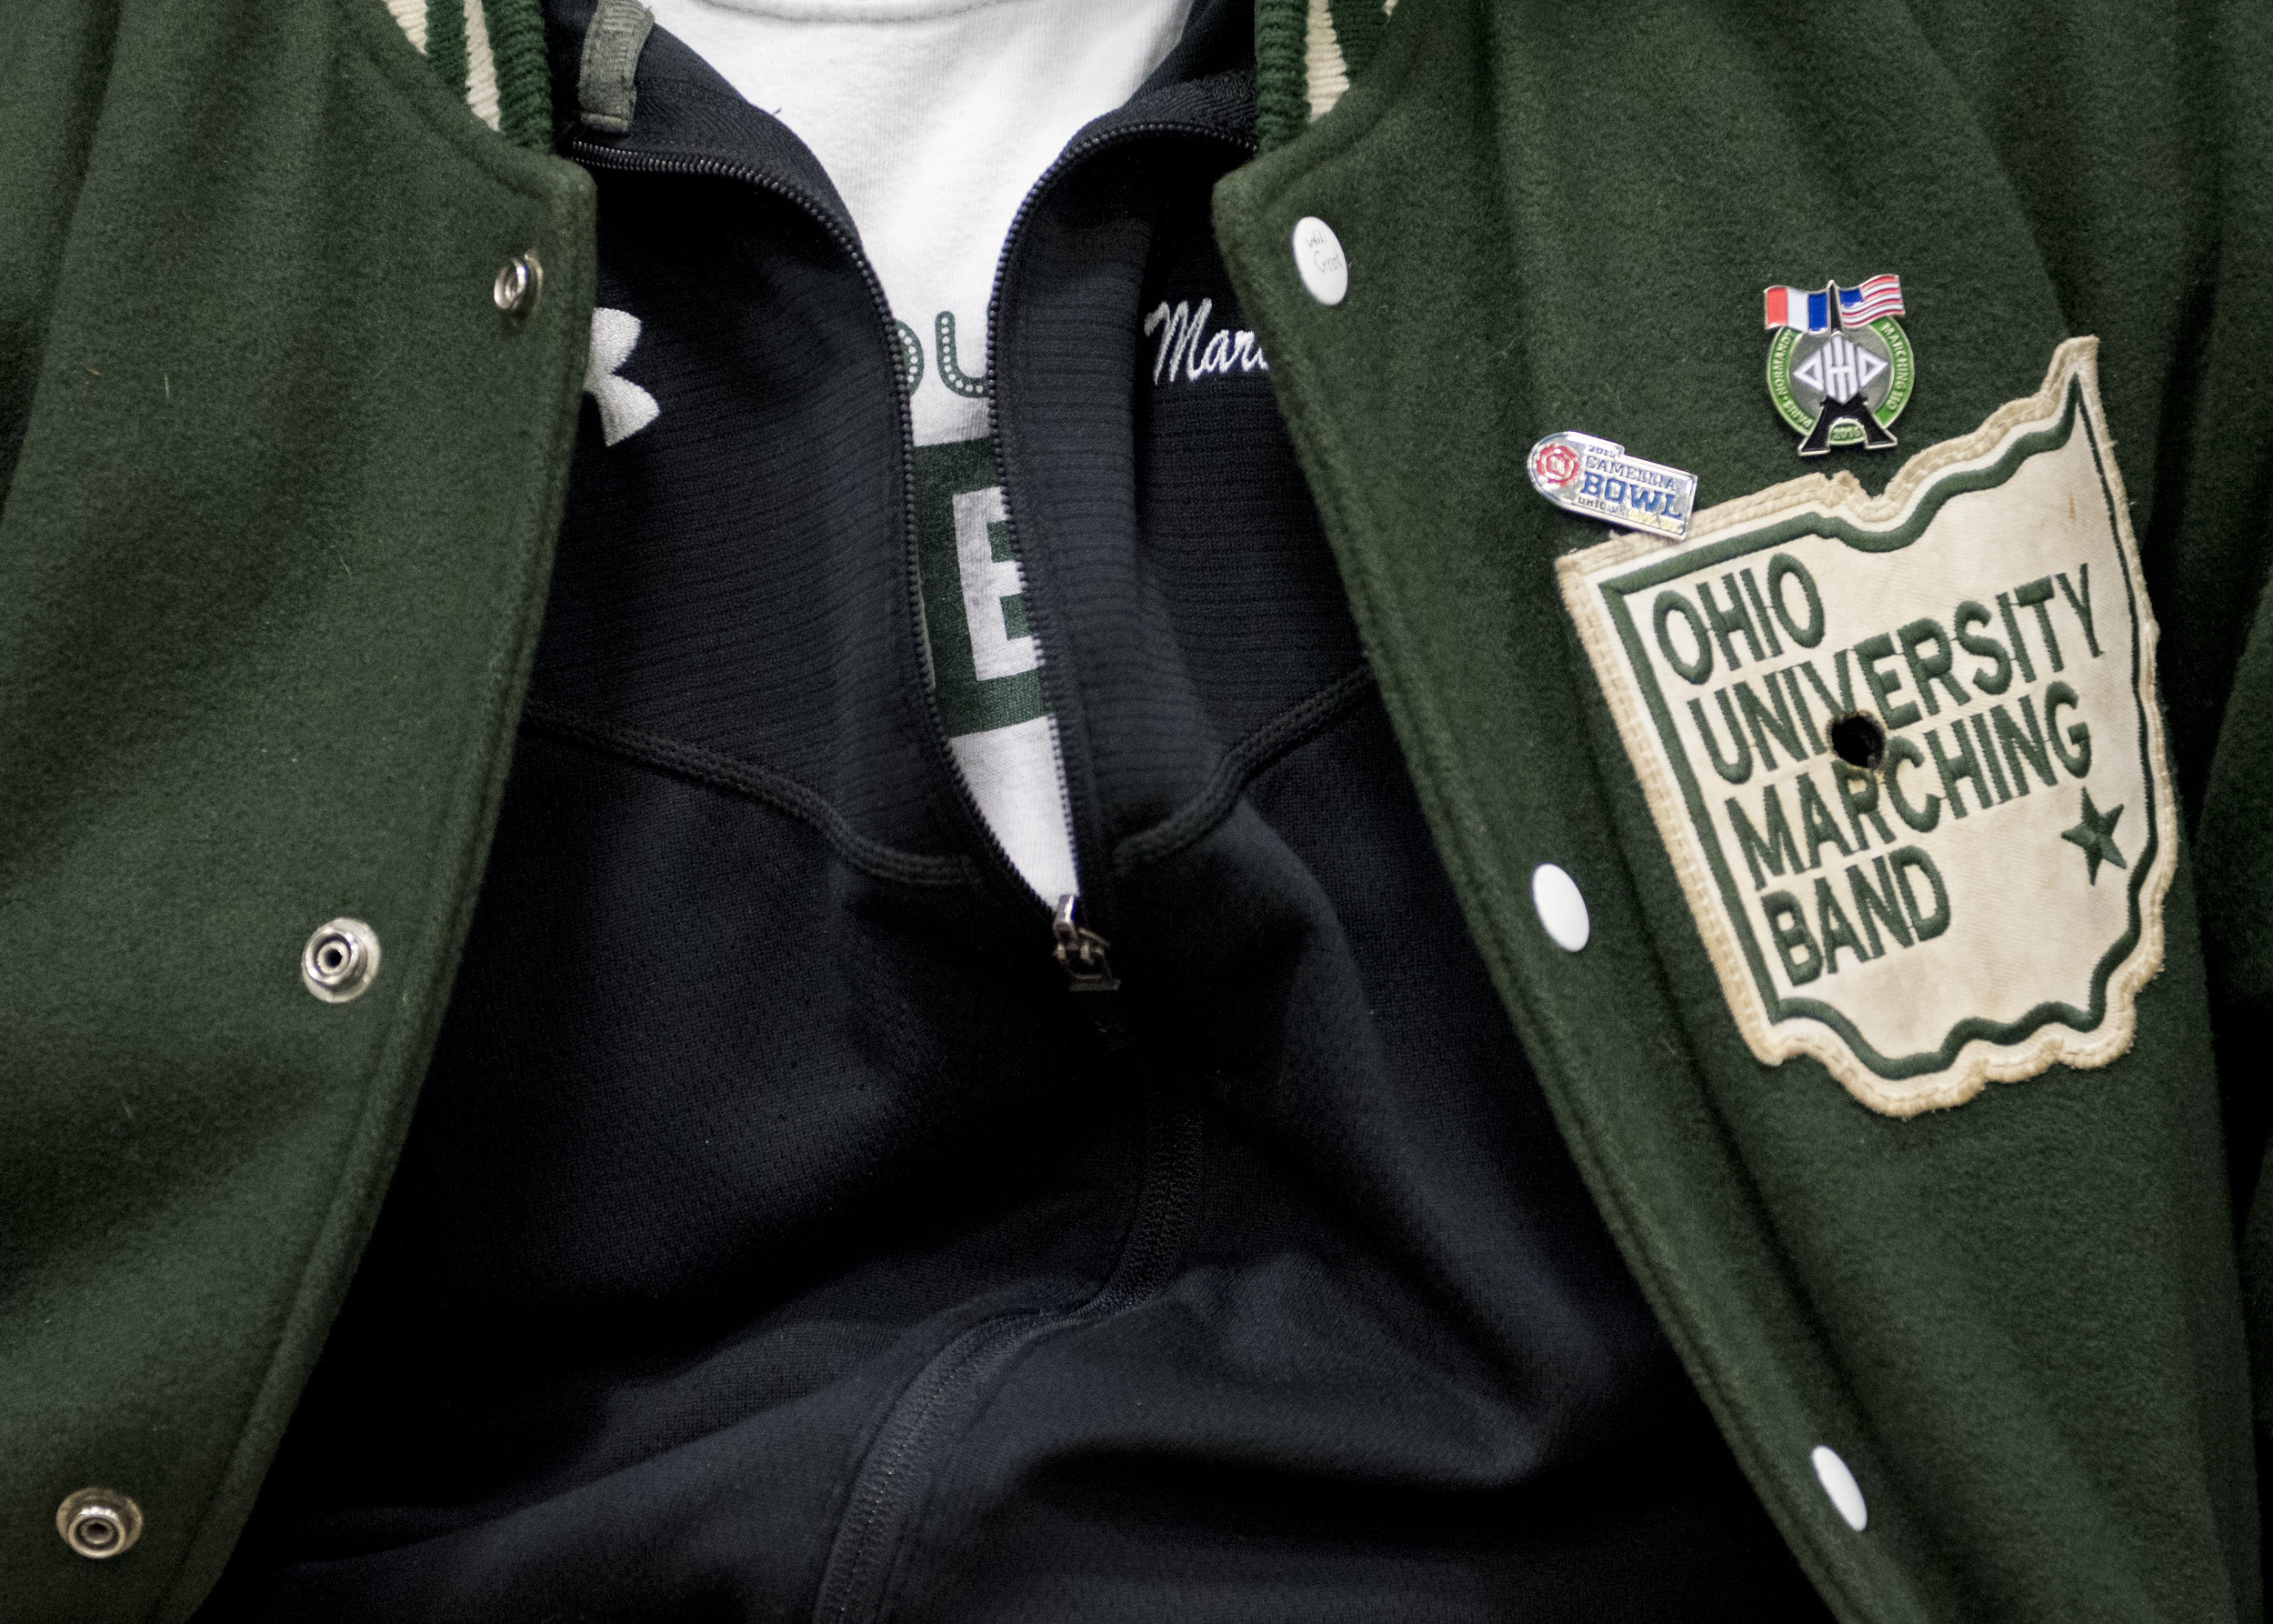 When a band member receives their 110 jacket, it's customary to burn a hole into the area of Ohio where you're from. If not from Ohio, members will burn a hole wherever their hometown is relative to Ohio.